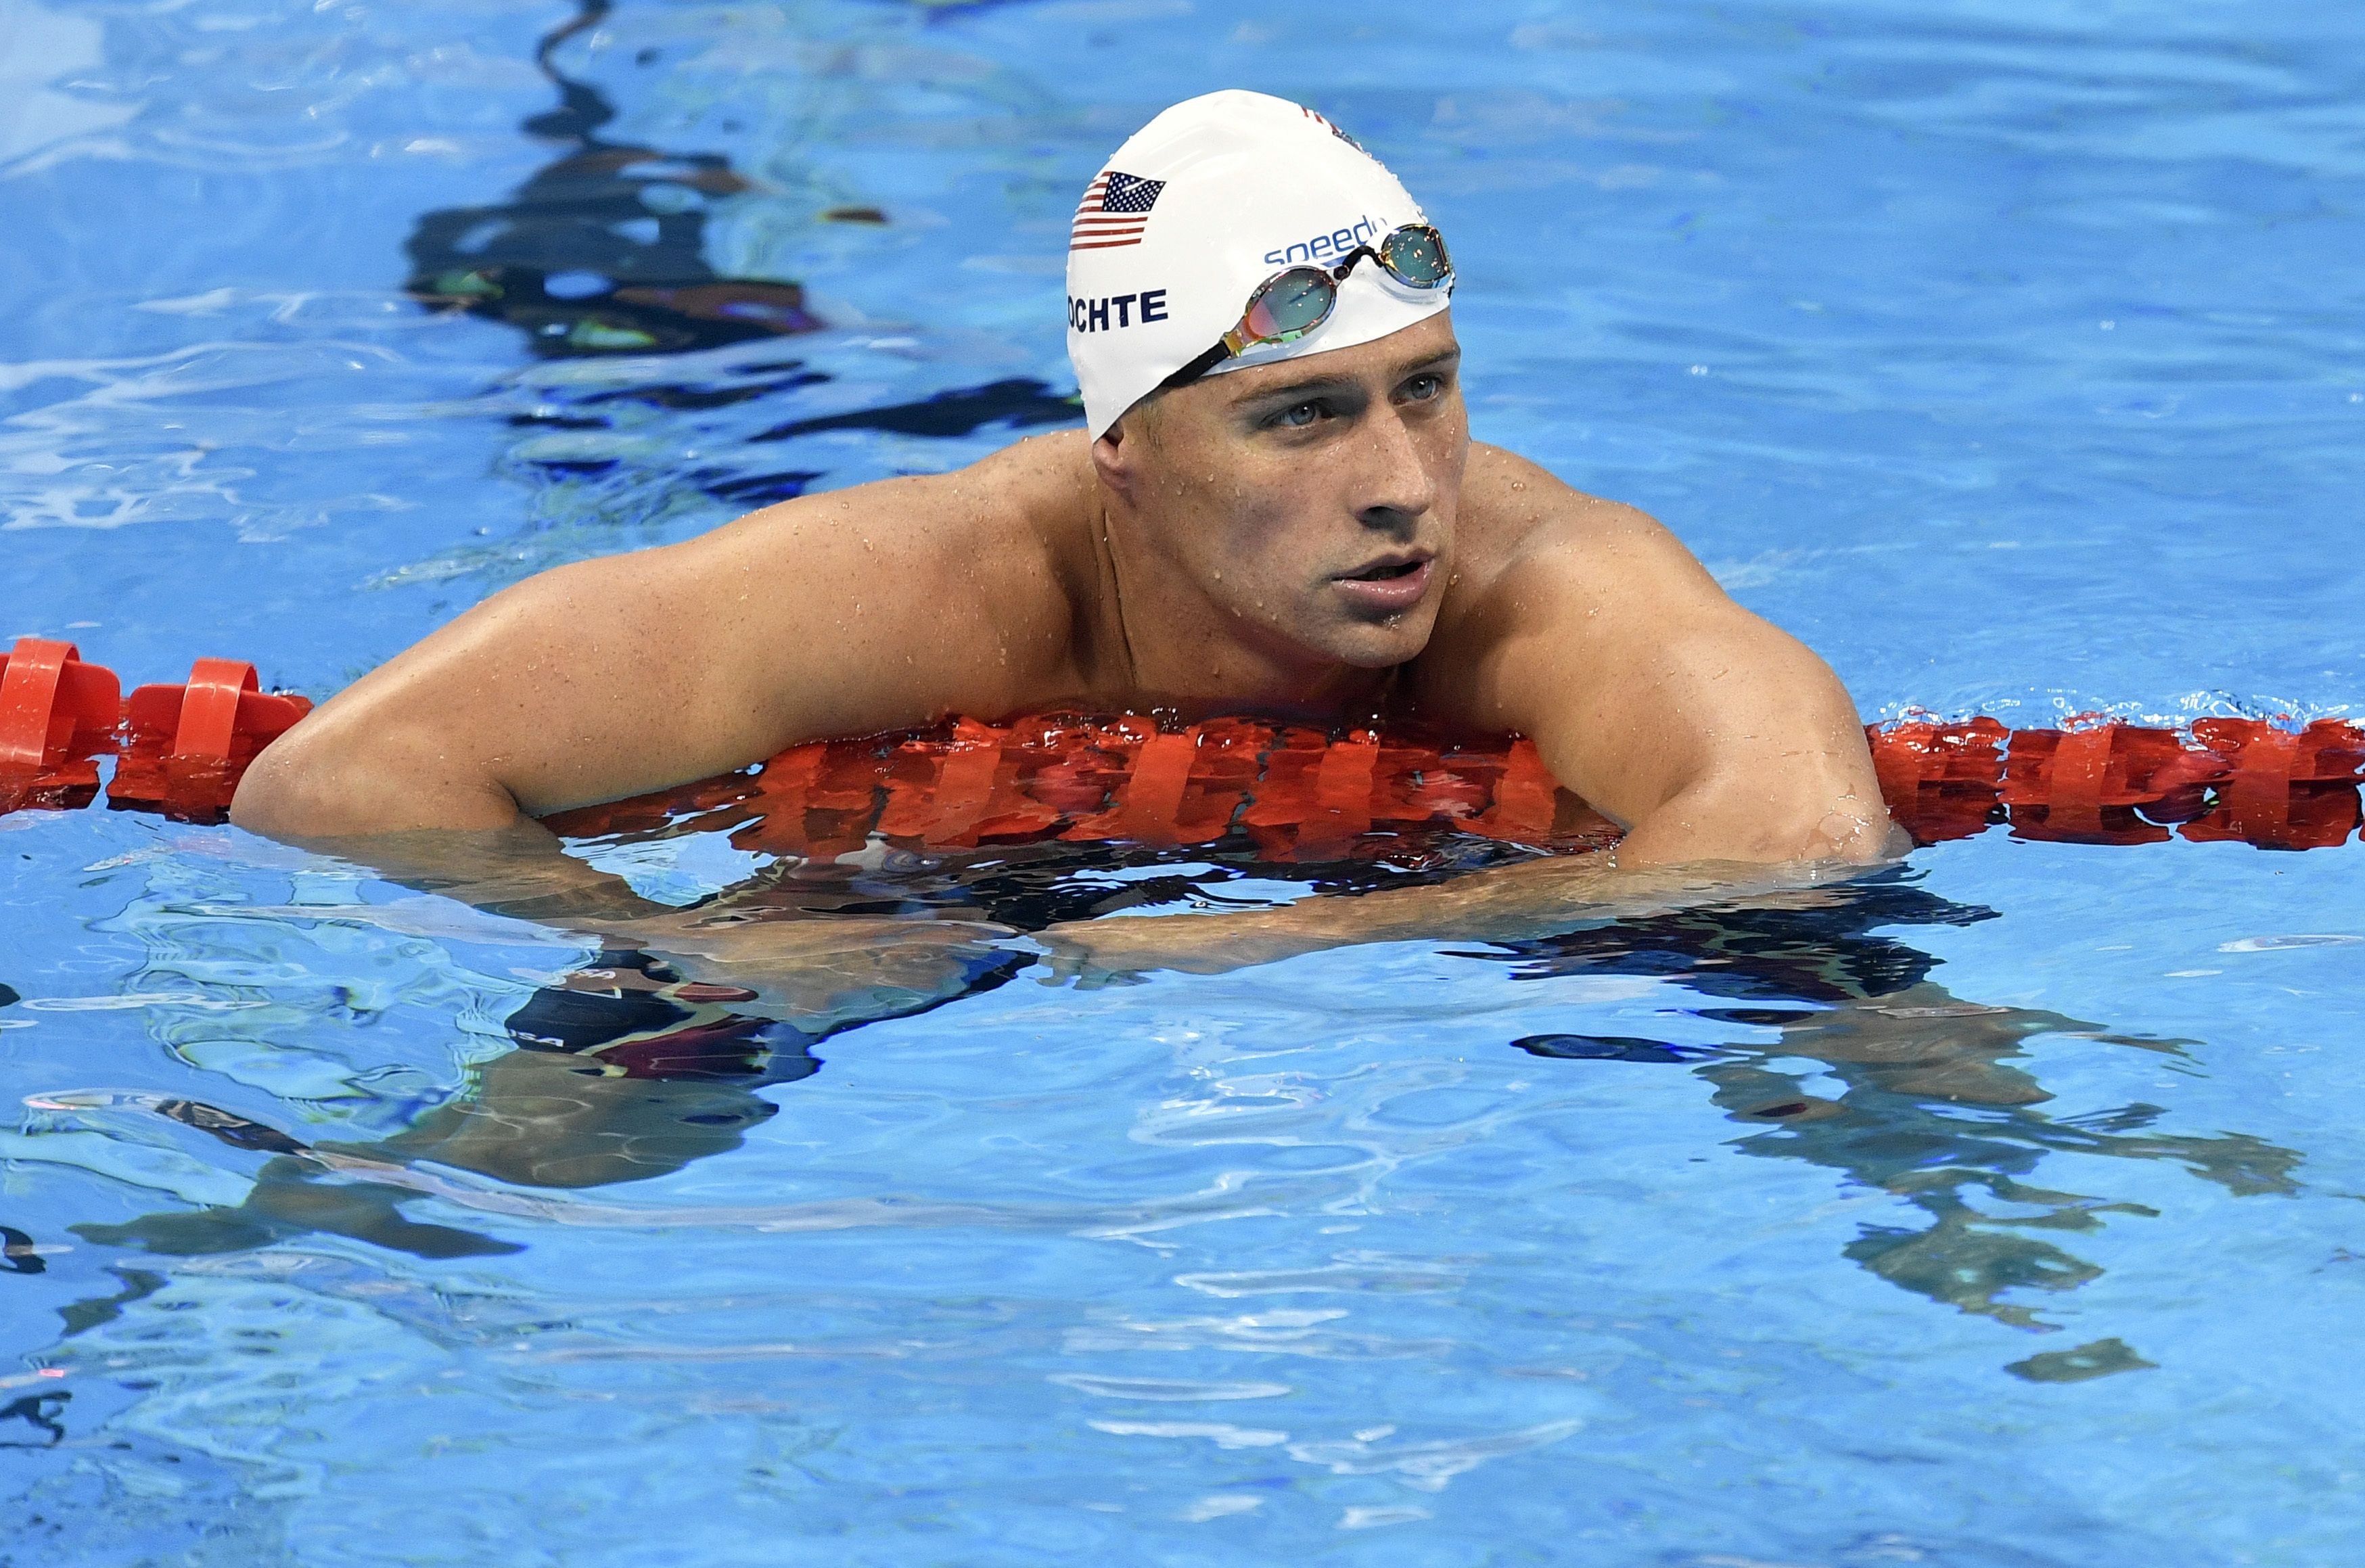 FILE - In this Aug. 9, 2016, file photo, United States' Ryan Lochte checks his time after a men' 4x200-meter freestyle relay heat during the swimming competitions at the 2016 Summer Olympics in Rio de Janeiro, Brazil. A Brazilian police official told The